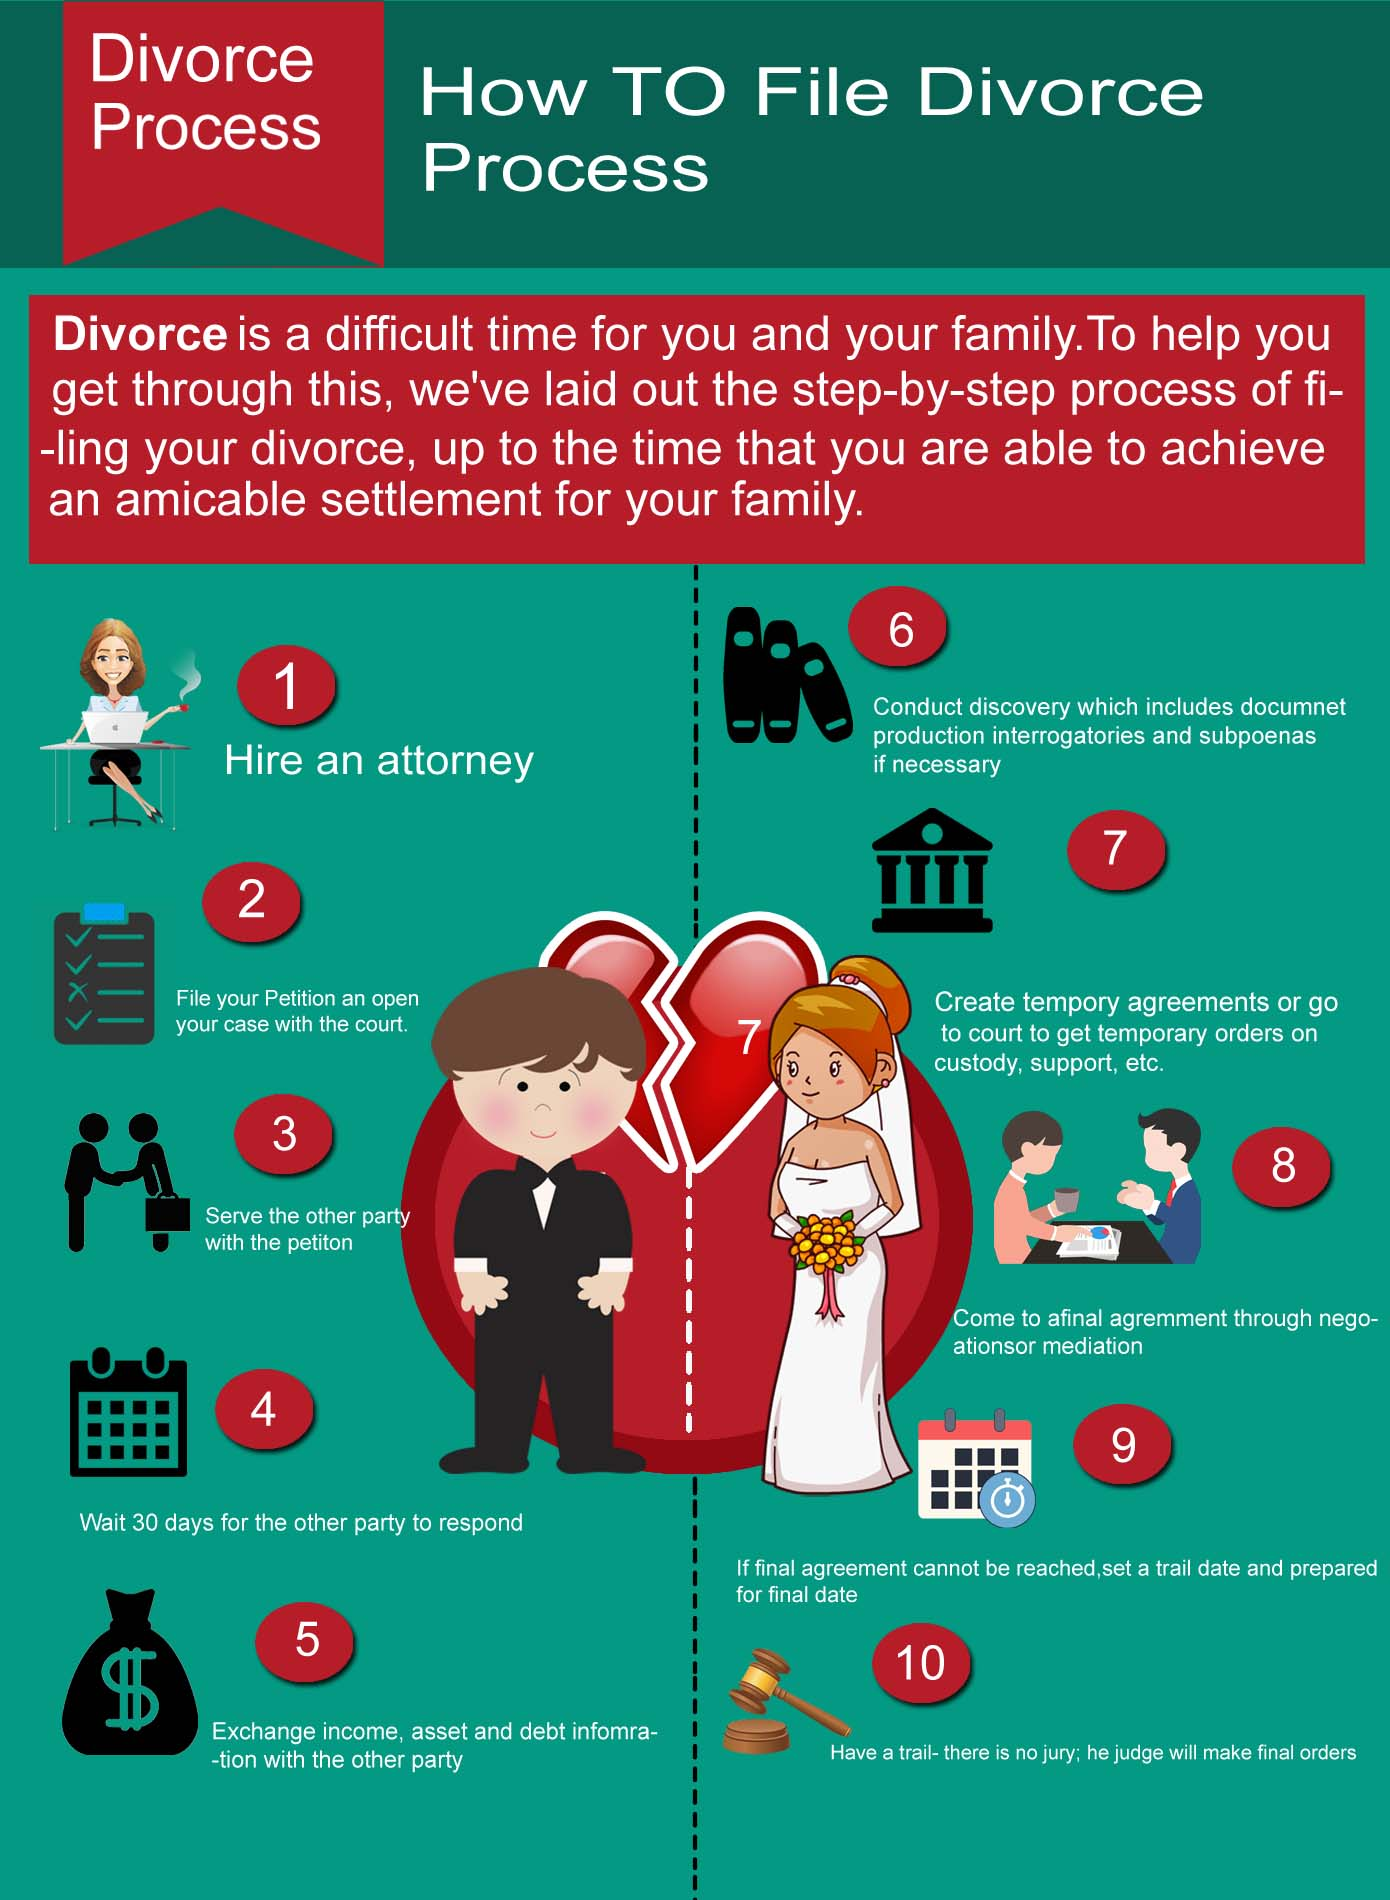 Filing a Divorce is Now Easy with Online Process +91-7703862833